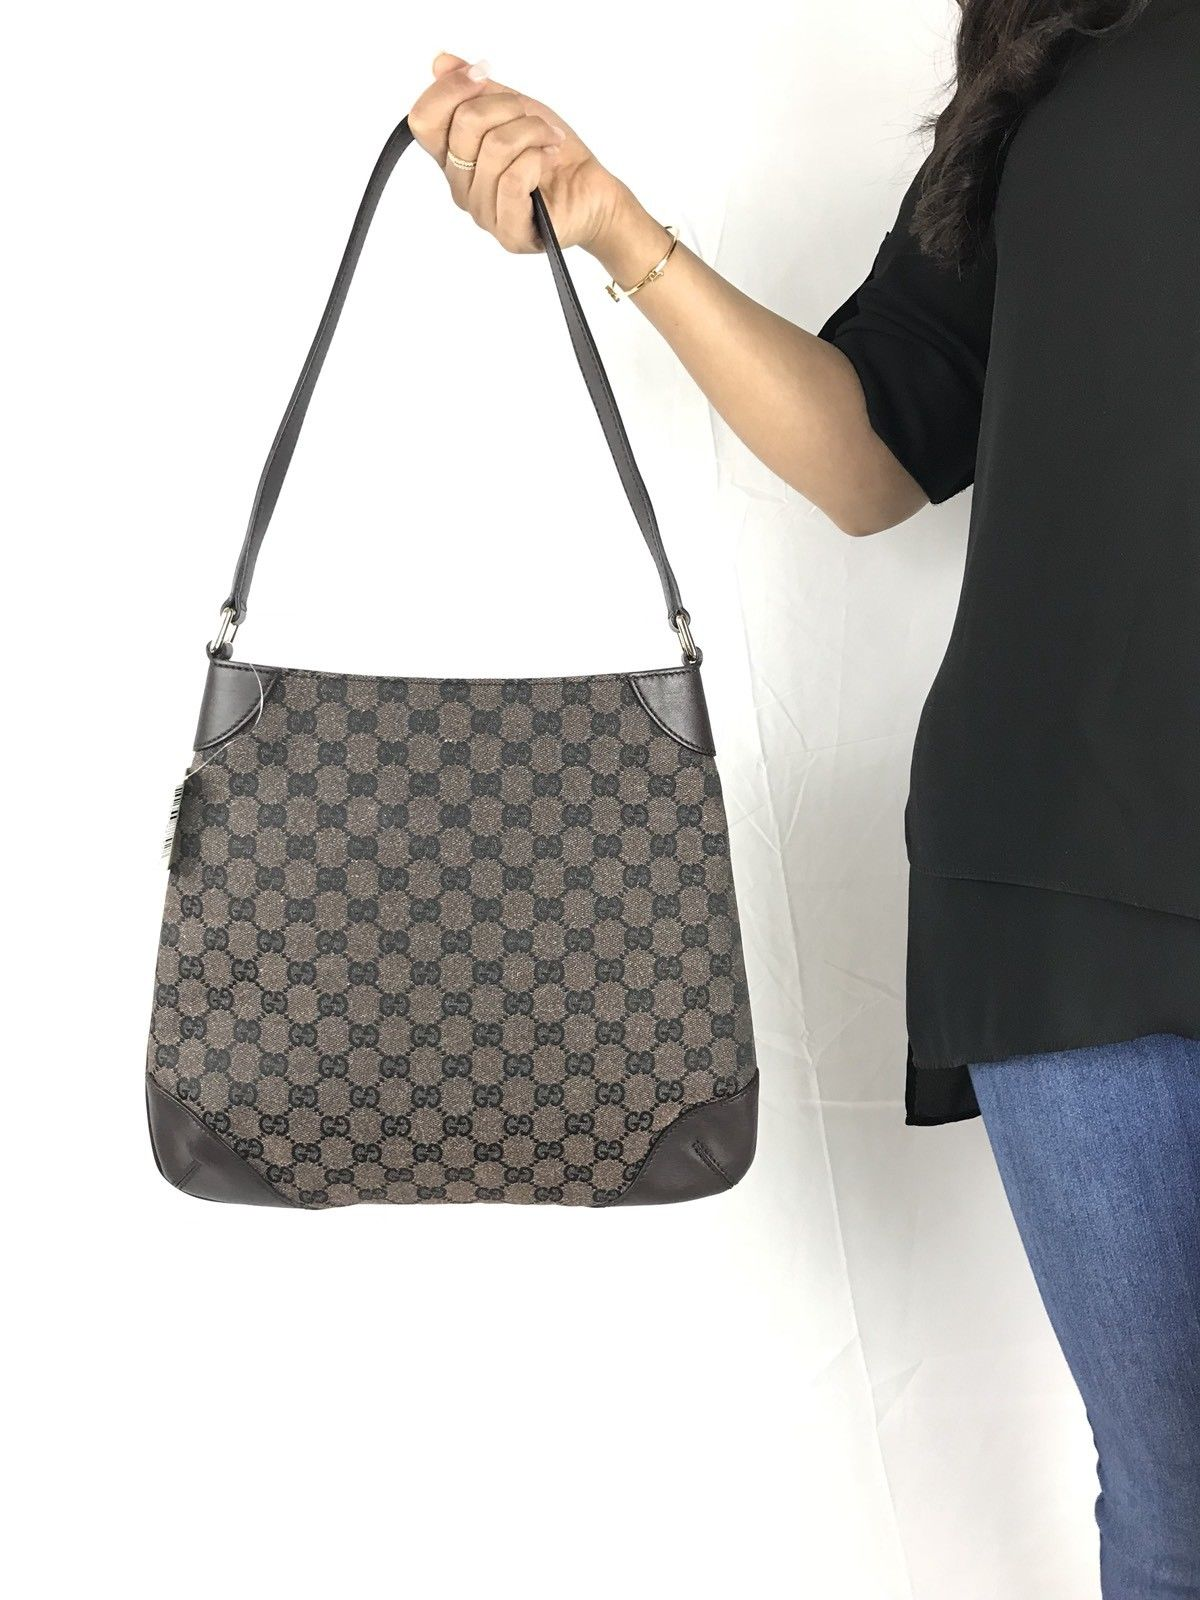 ab71a57520 GUCCI BROWN CANVAS LEATHER BAG Costco limited edition